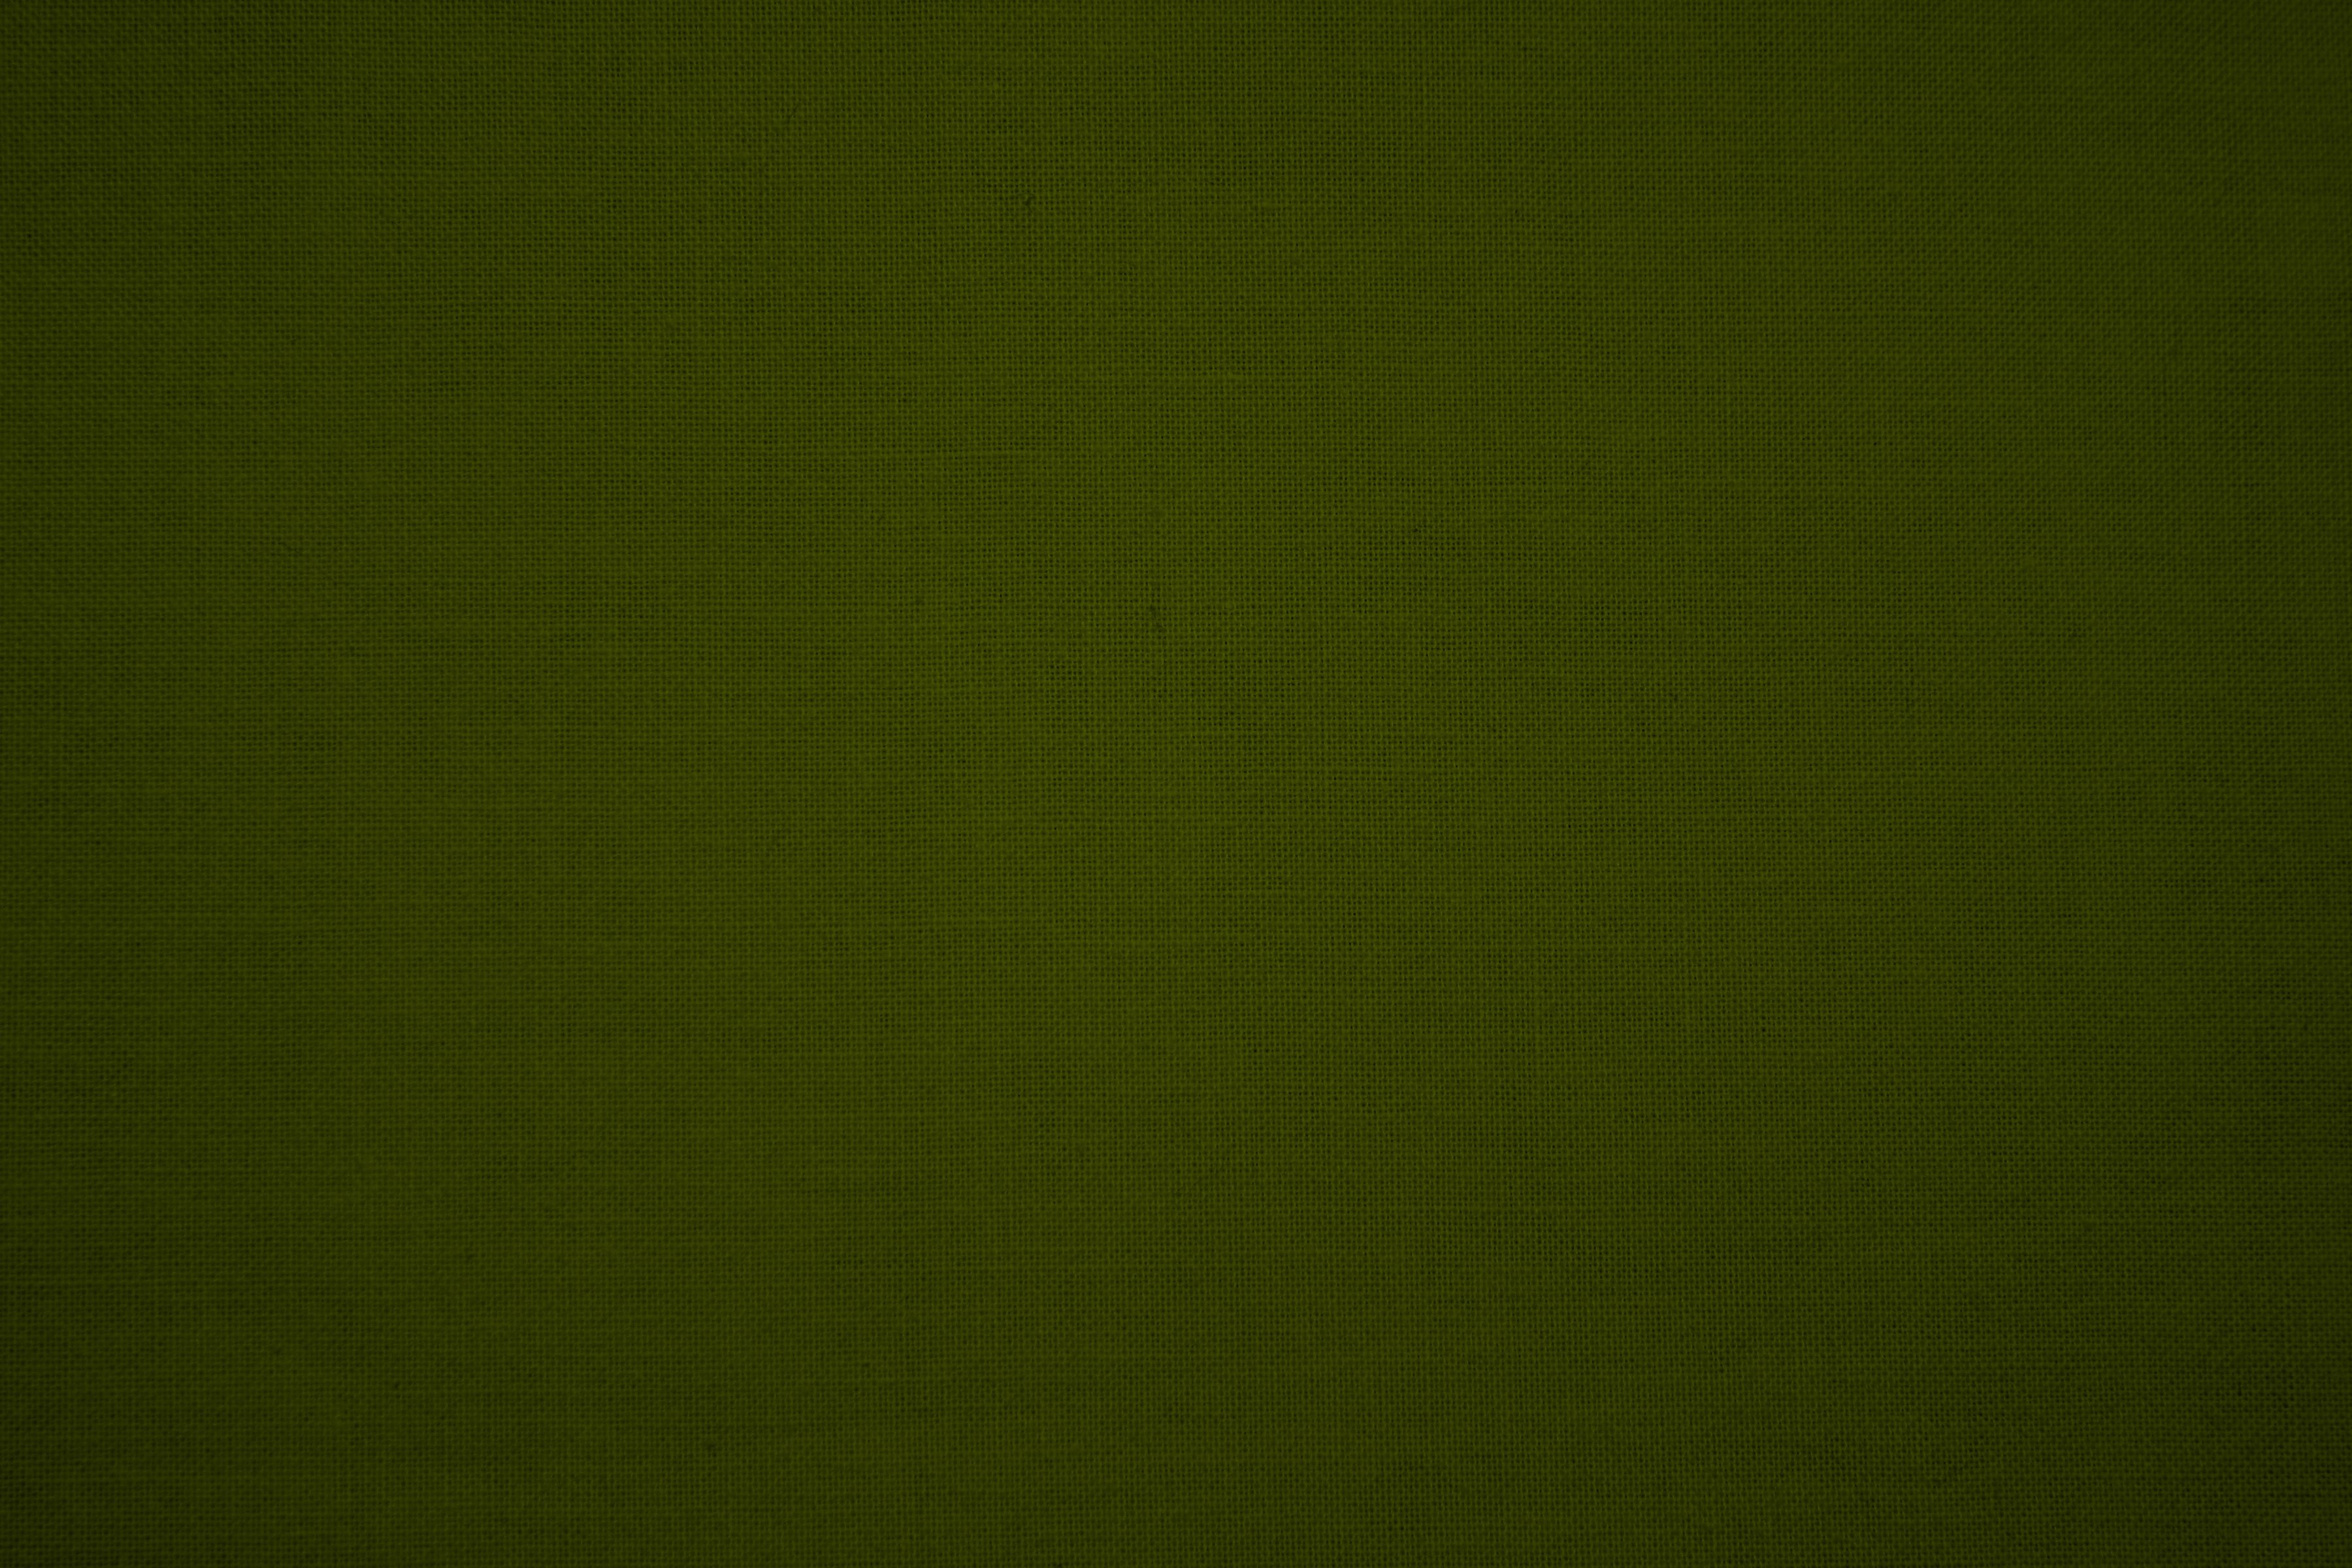 Olive Green Canvas Fabric Texture Picture 3600x2400